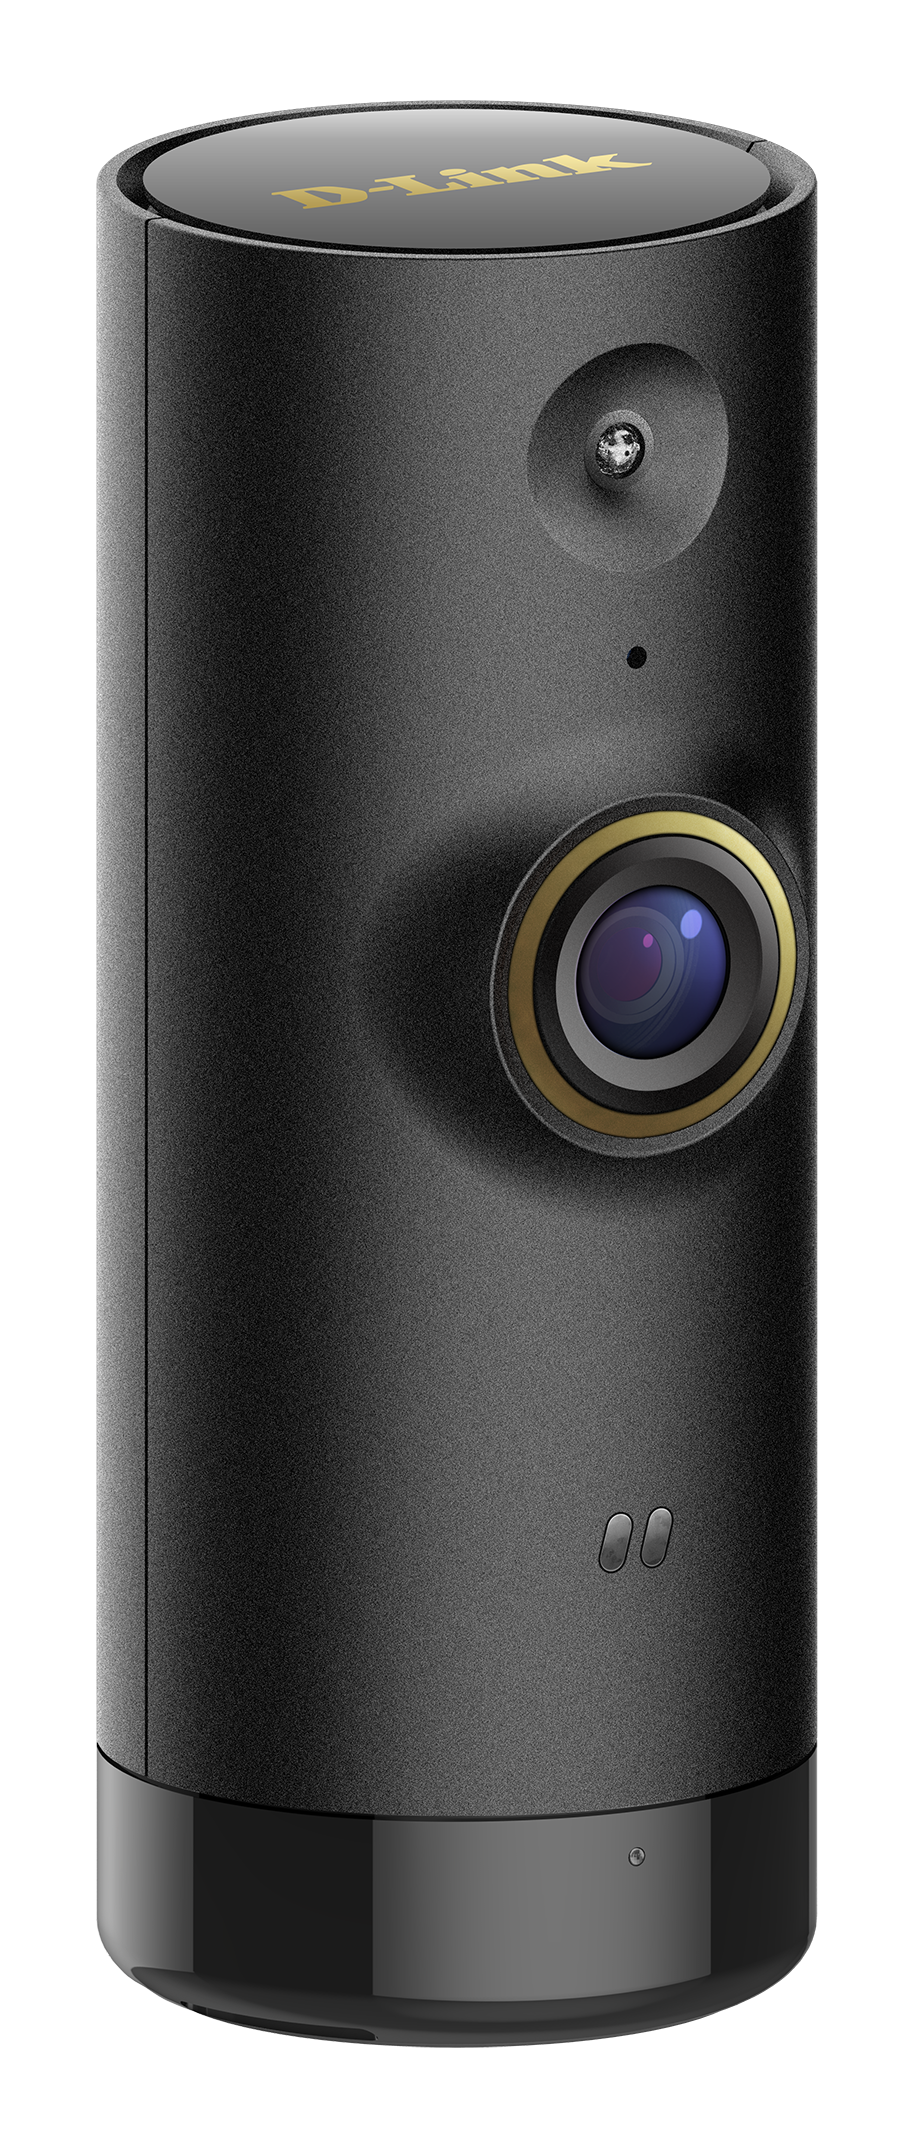 DCS-P6000LH Mini Wi-Fi Camera side right